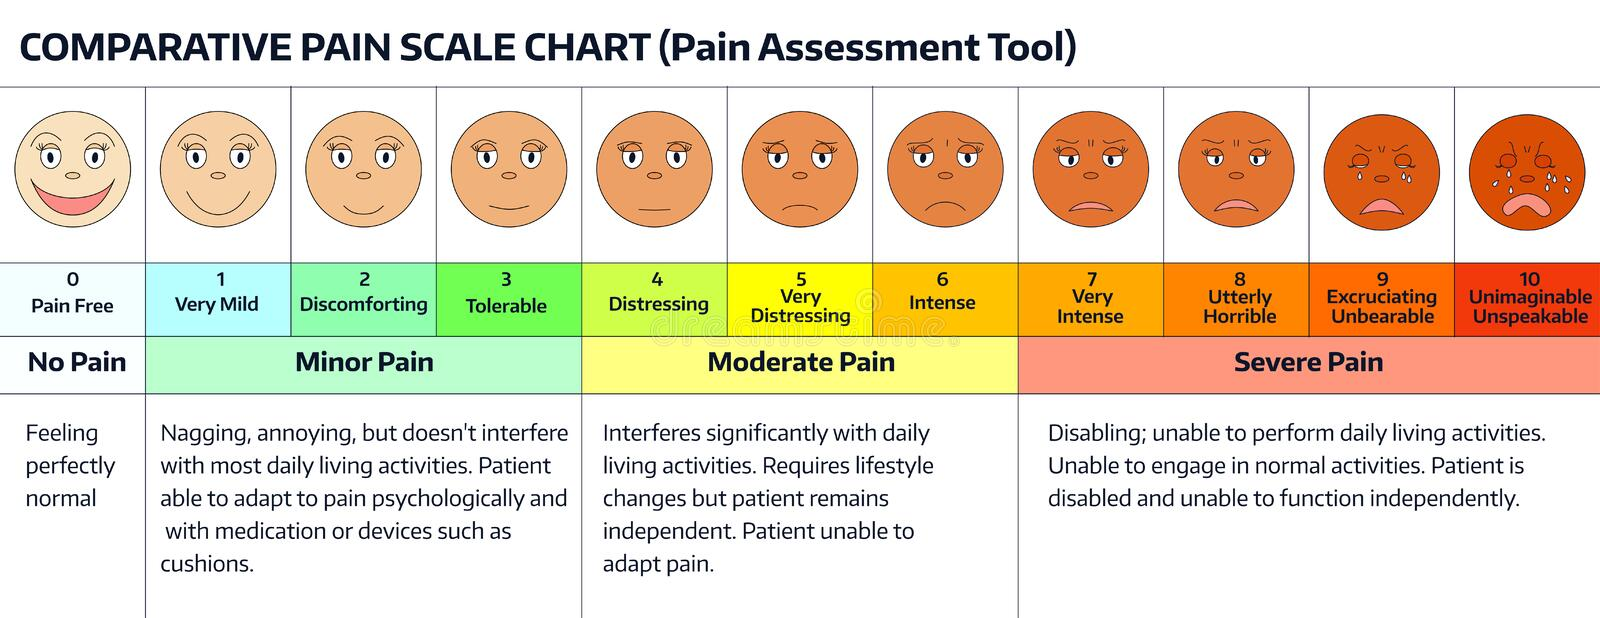 Faces - pain scale chart. Faces pain rating scale. Comparative pain scale chart. Pain assessment tool vector illustration